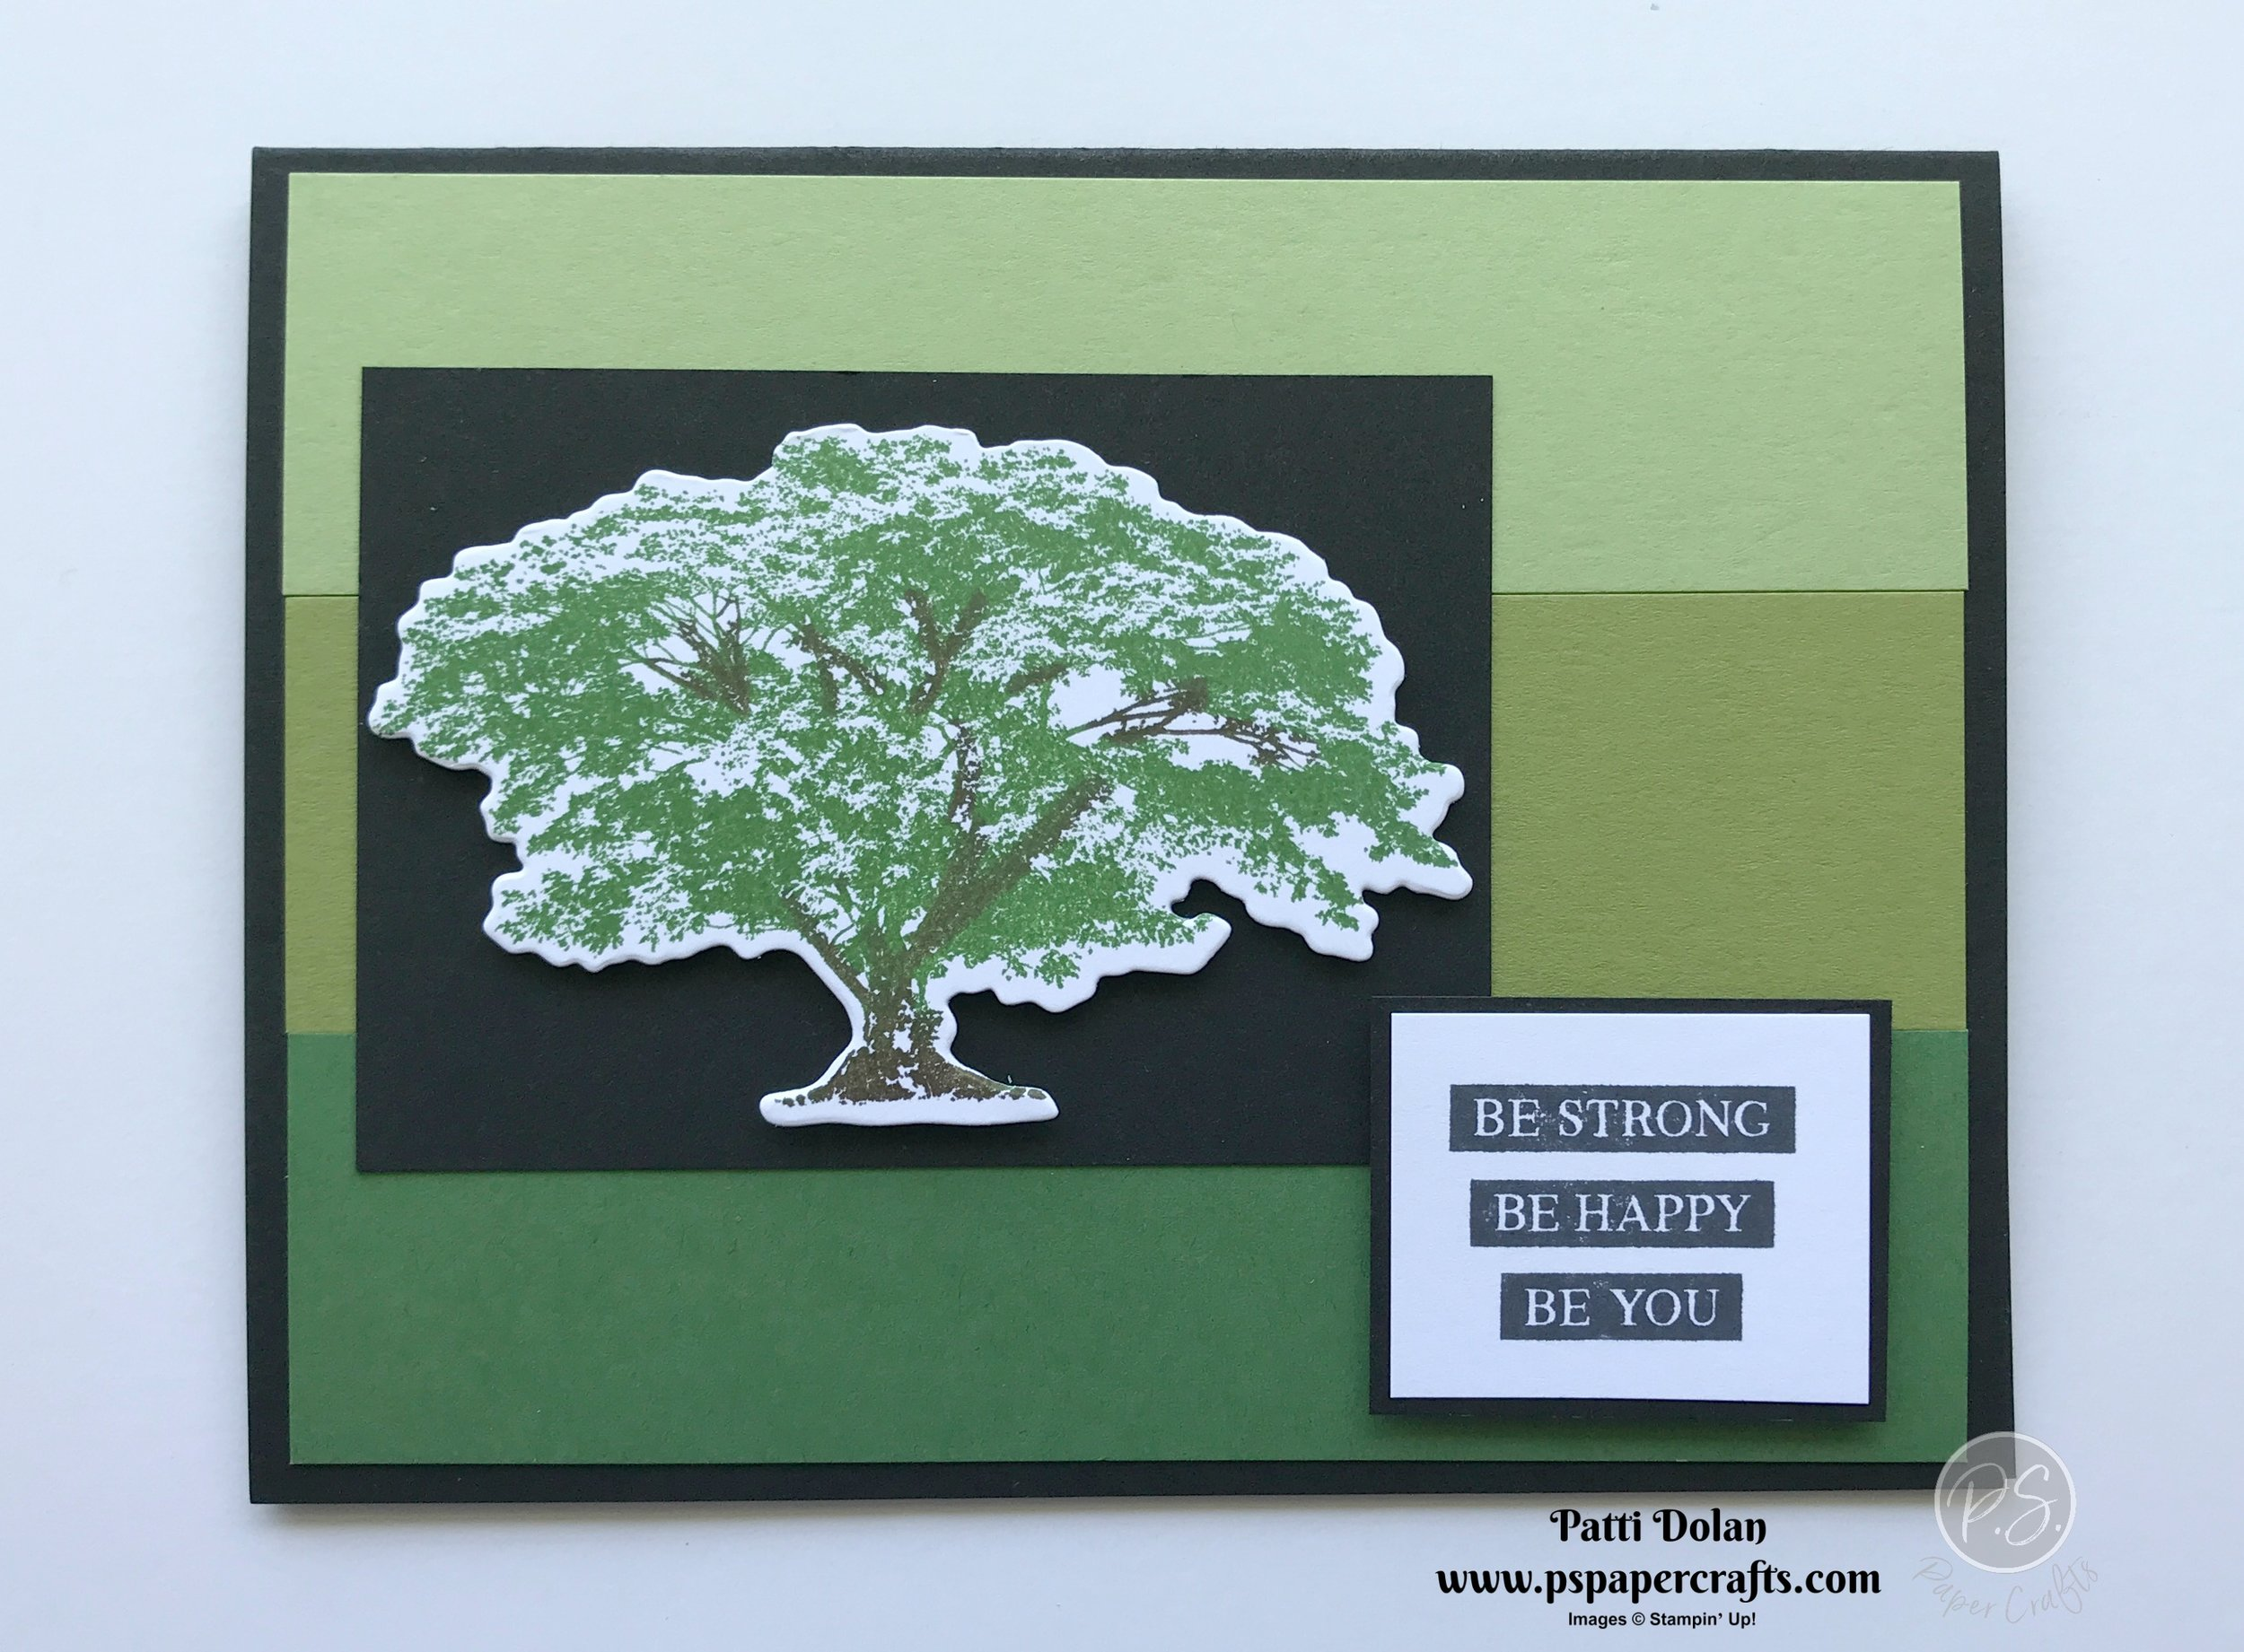 Rooted In Nature Cards.jpg